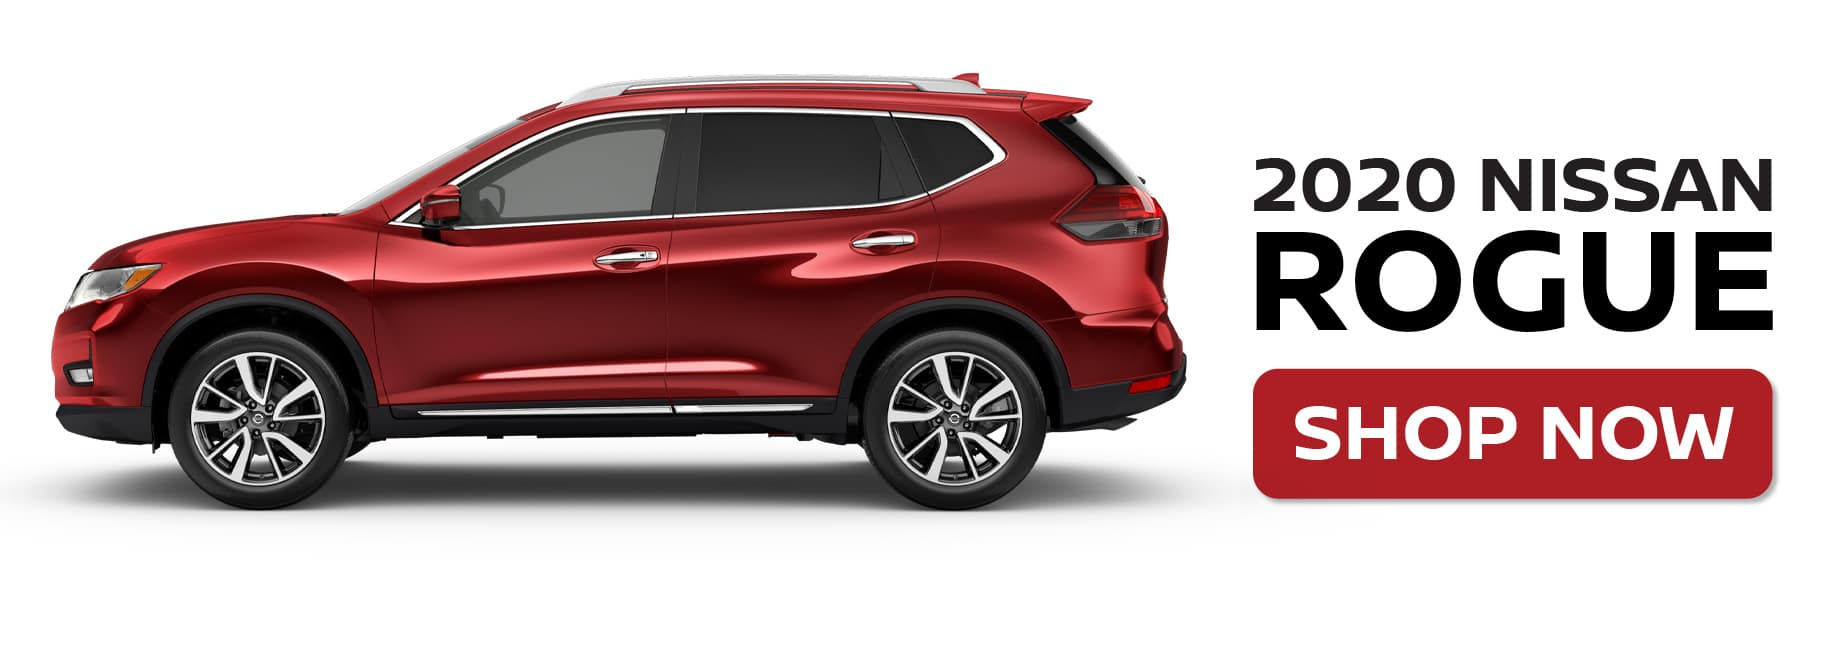 Nissan Rogue Special